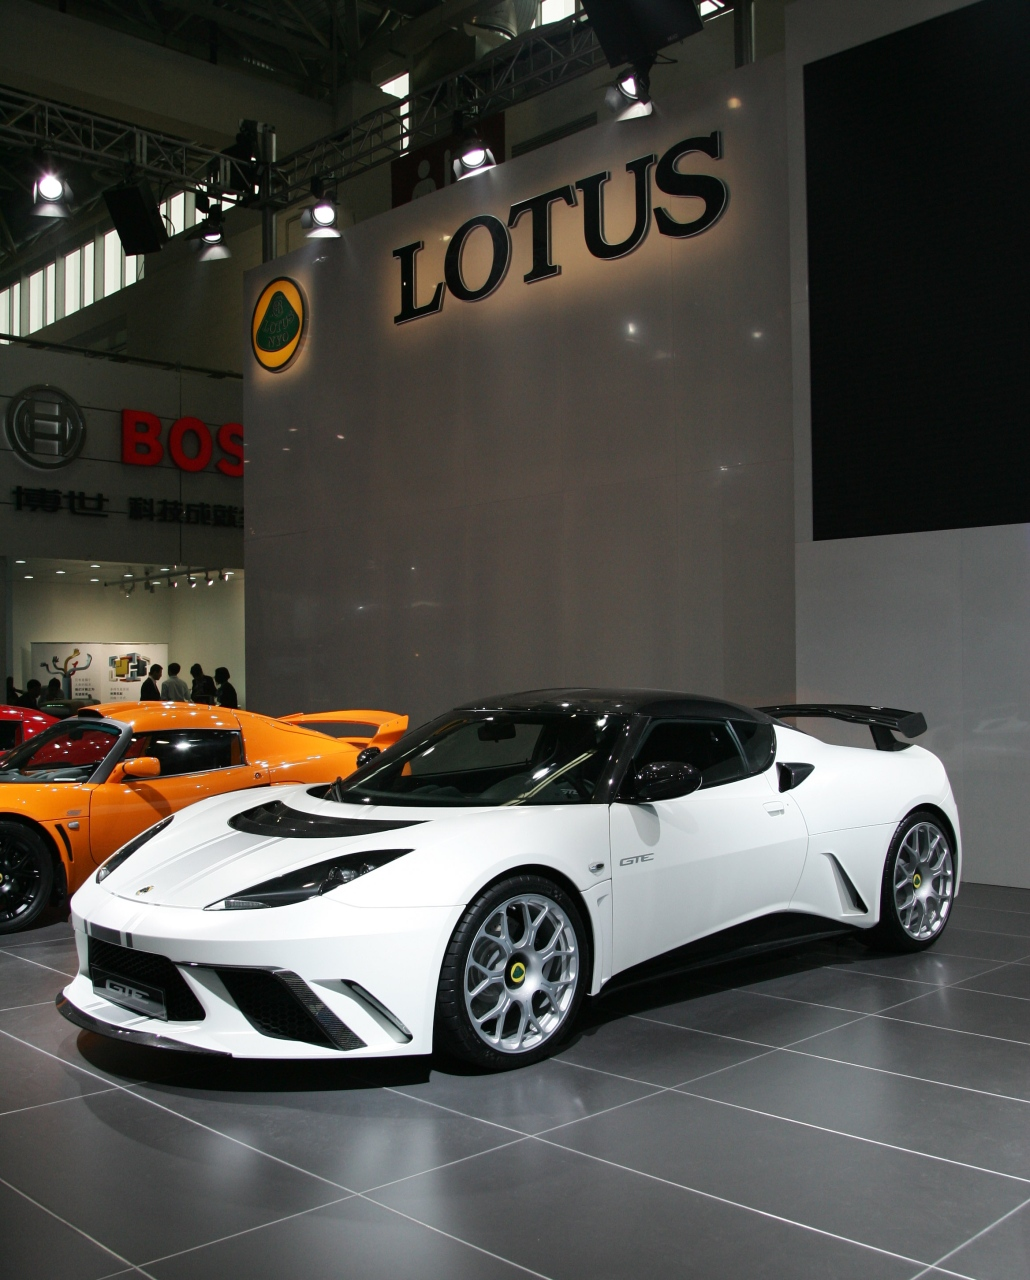 Lotus_Evora_GTE_China (2).jpg